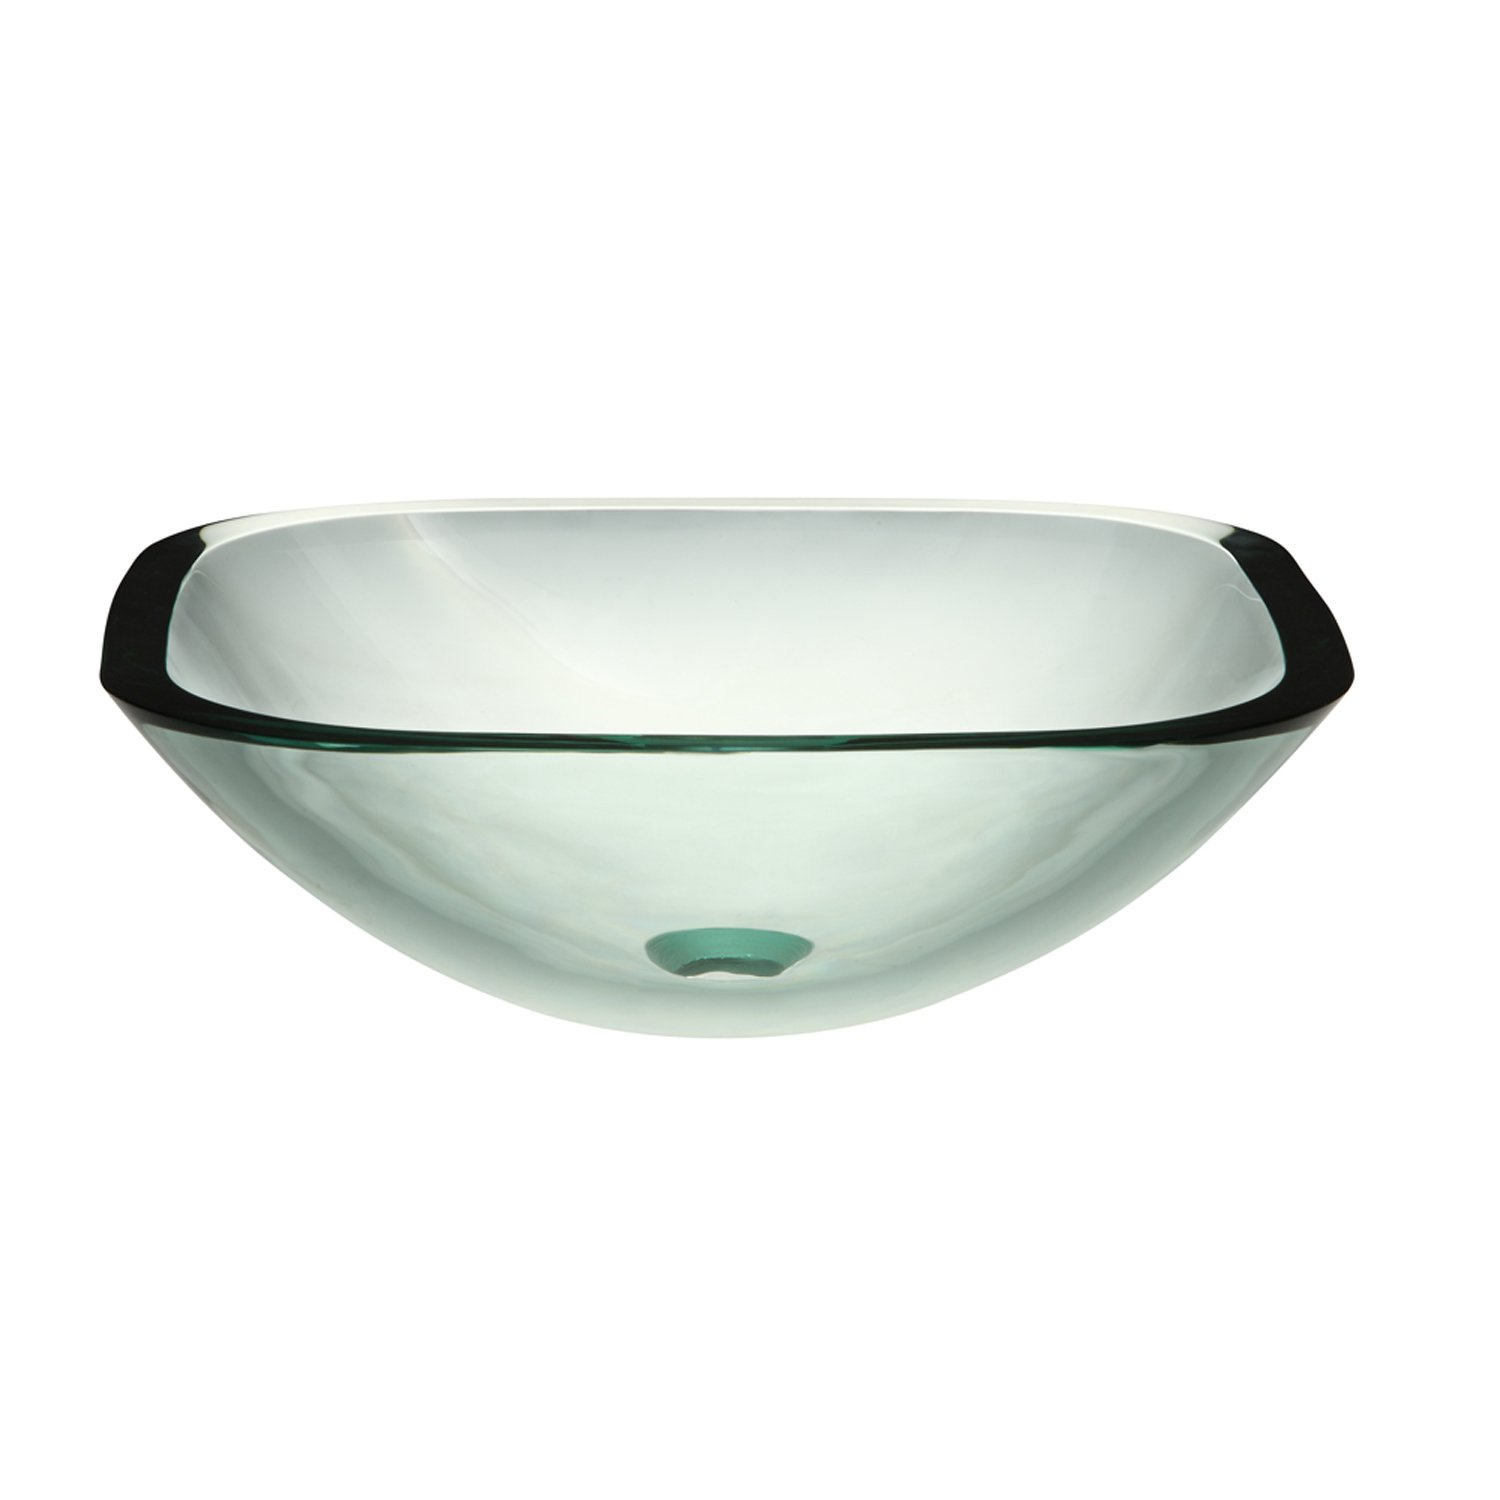 Bathroom available in 5 finishes vessel bathroom sinks msrp 425 - Decolav 1139t Tcr Translucence 19mm Square Glass Vessel Bathroom Sink Transparent Crystal Amazon Com